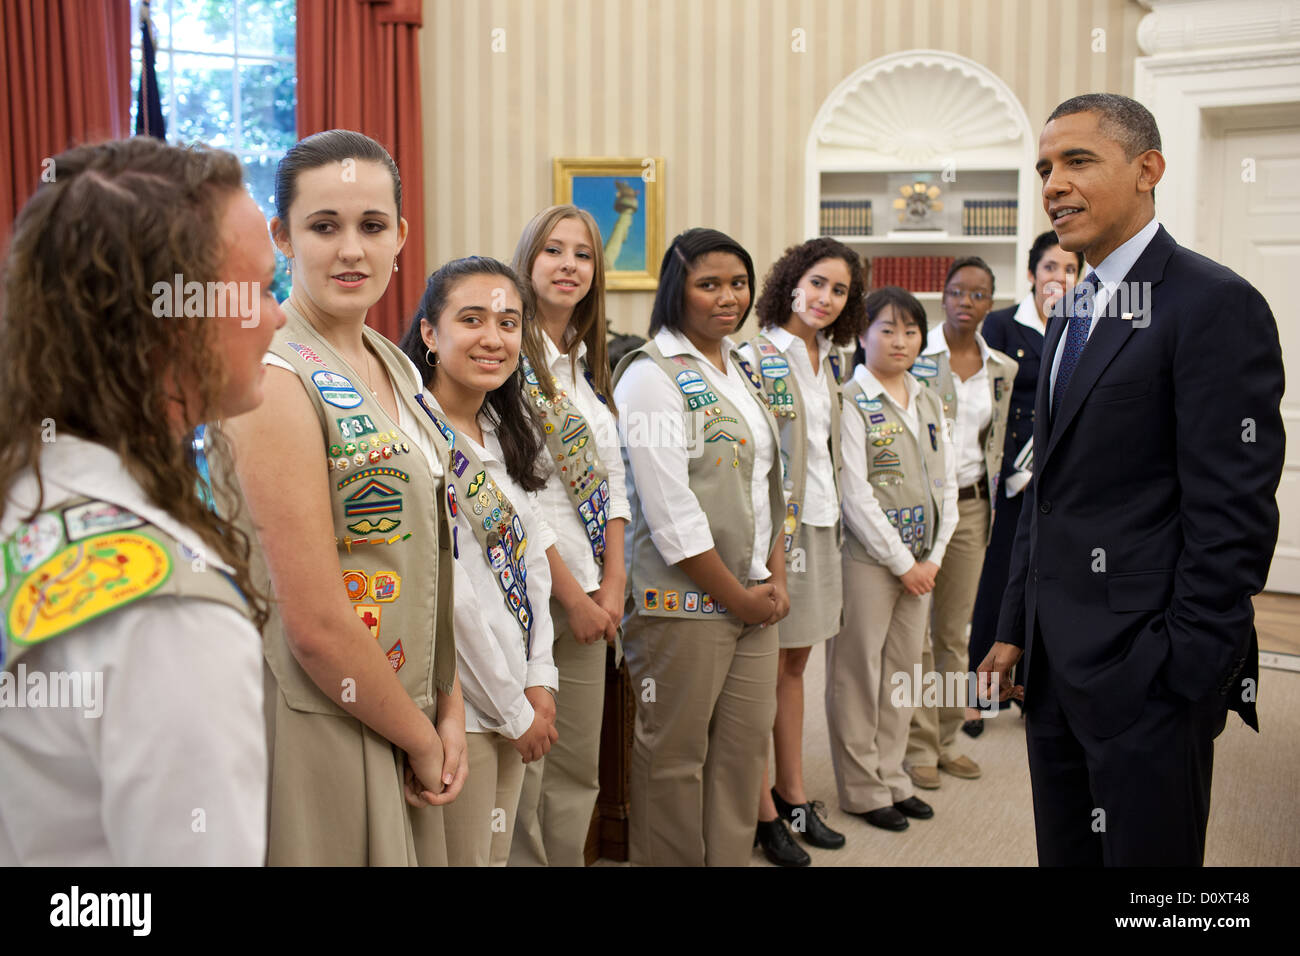 president barack obama talks with girl scout gold award winners in the oval office of the barak obama oval office golds